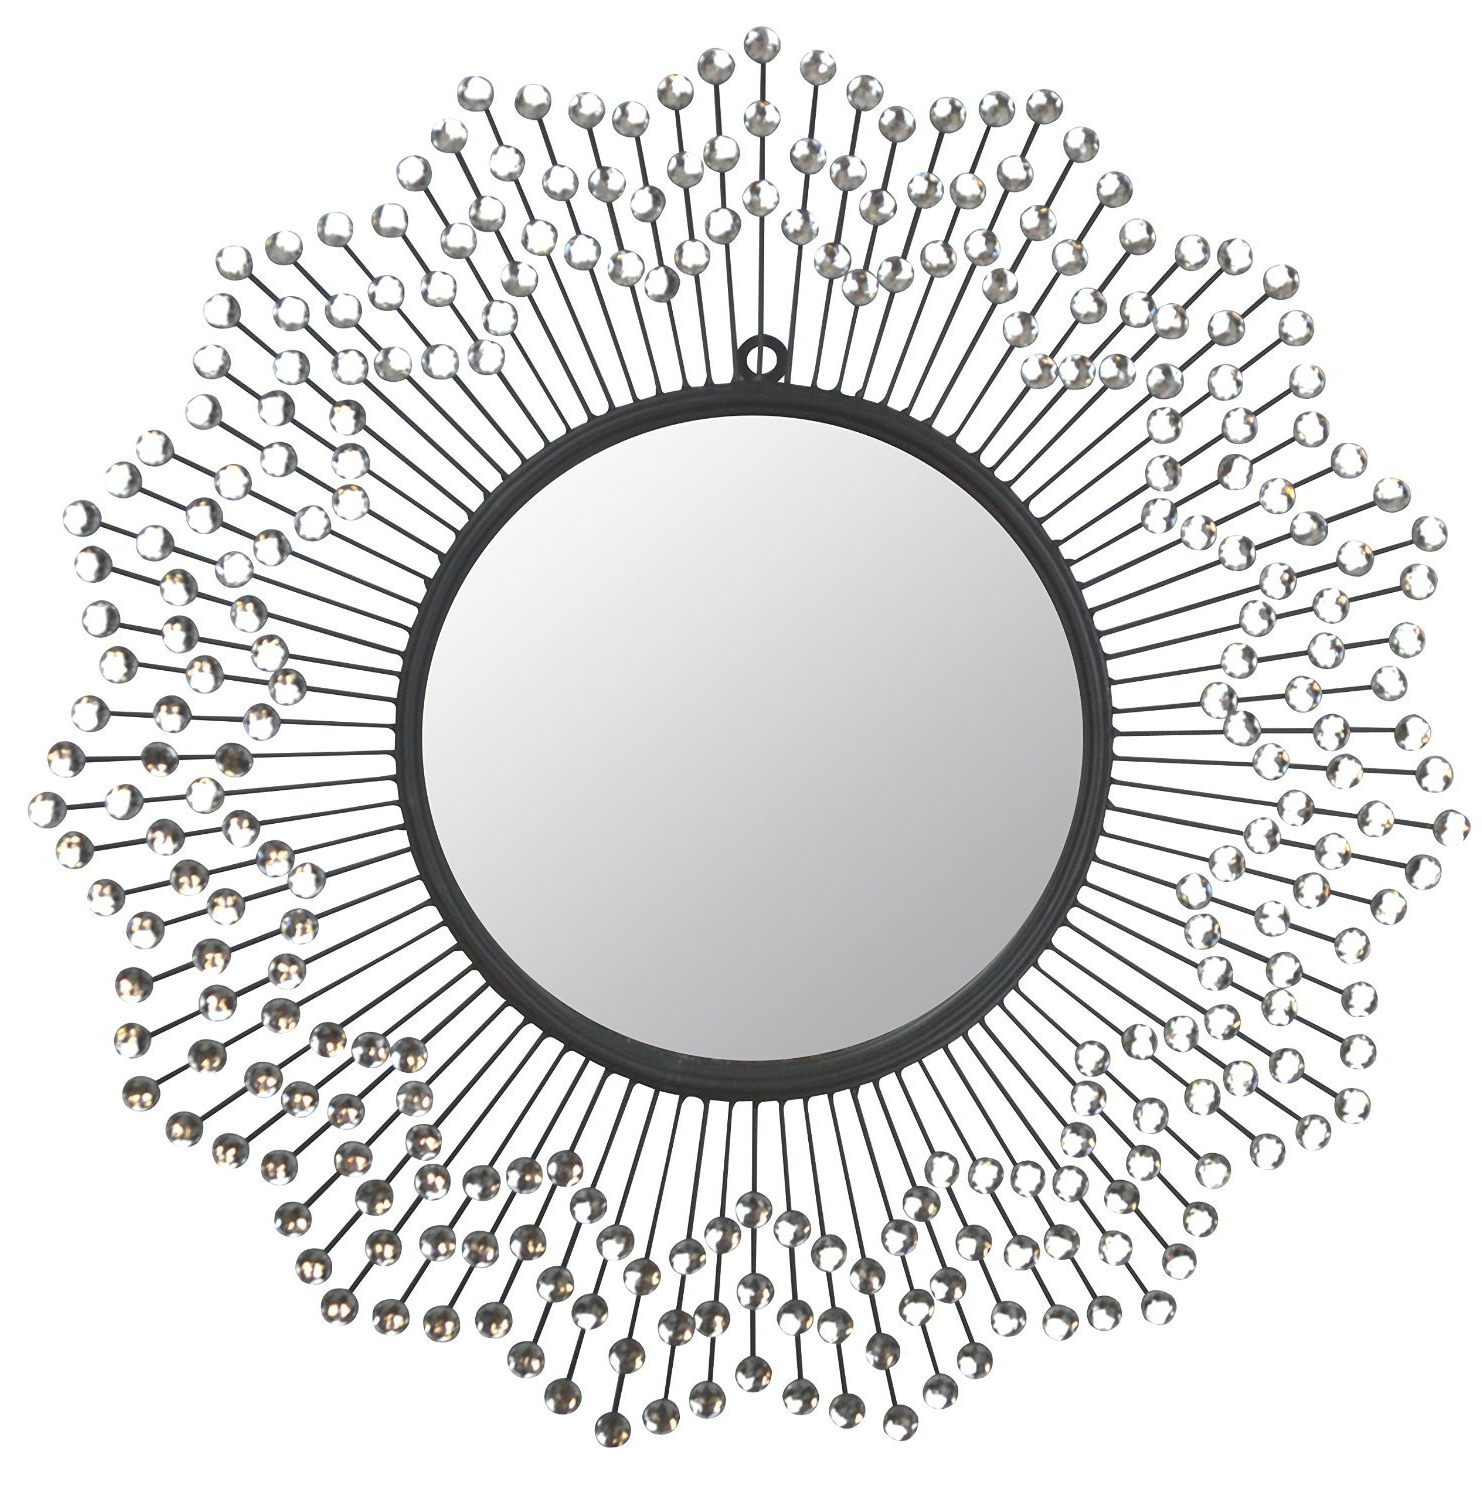 "Well Known Metal Wall Mirrors Intended For Lulu Décor, Celebration Metal Wall Mirror, Frame 24"", Round Decorative  Mirror For Living Room And Office Space (View 19 of 20)"